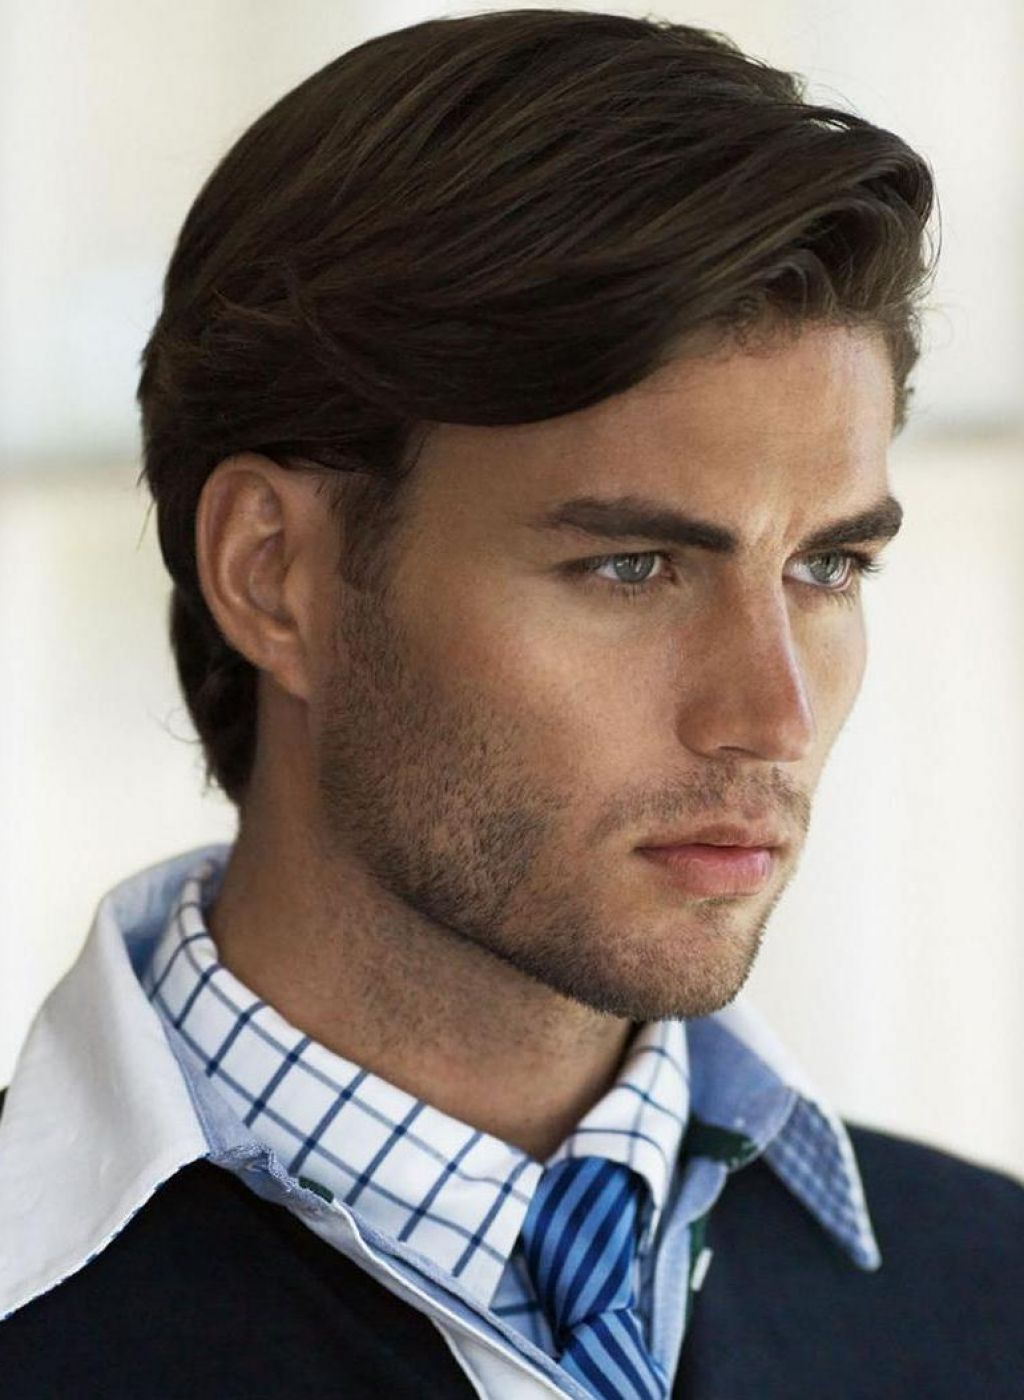 Medium short haircut men some good inspiration of short haircuts for guy with  picture of it